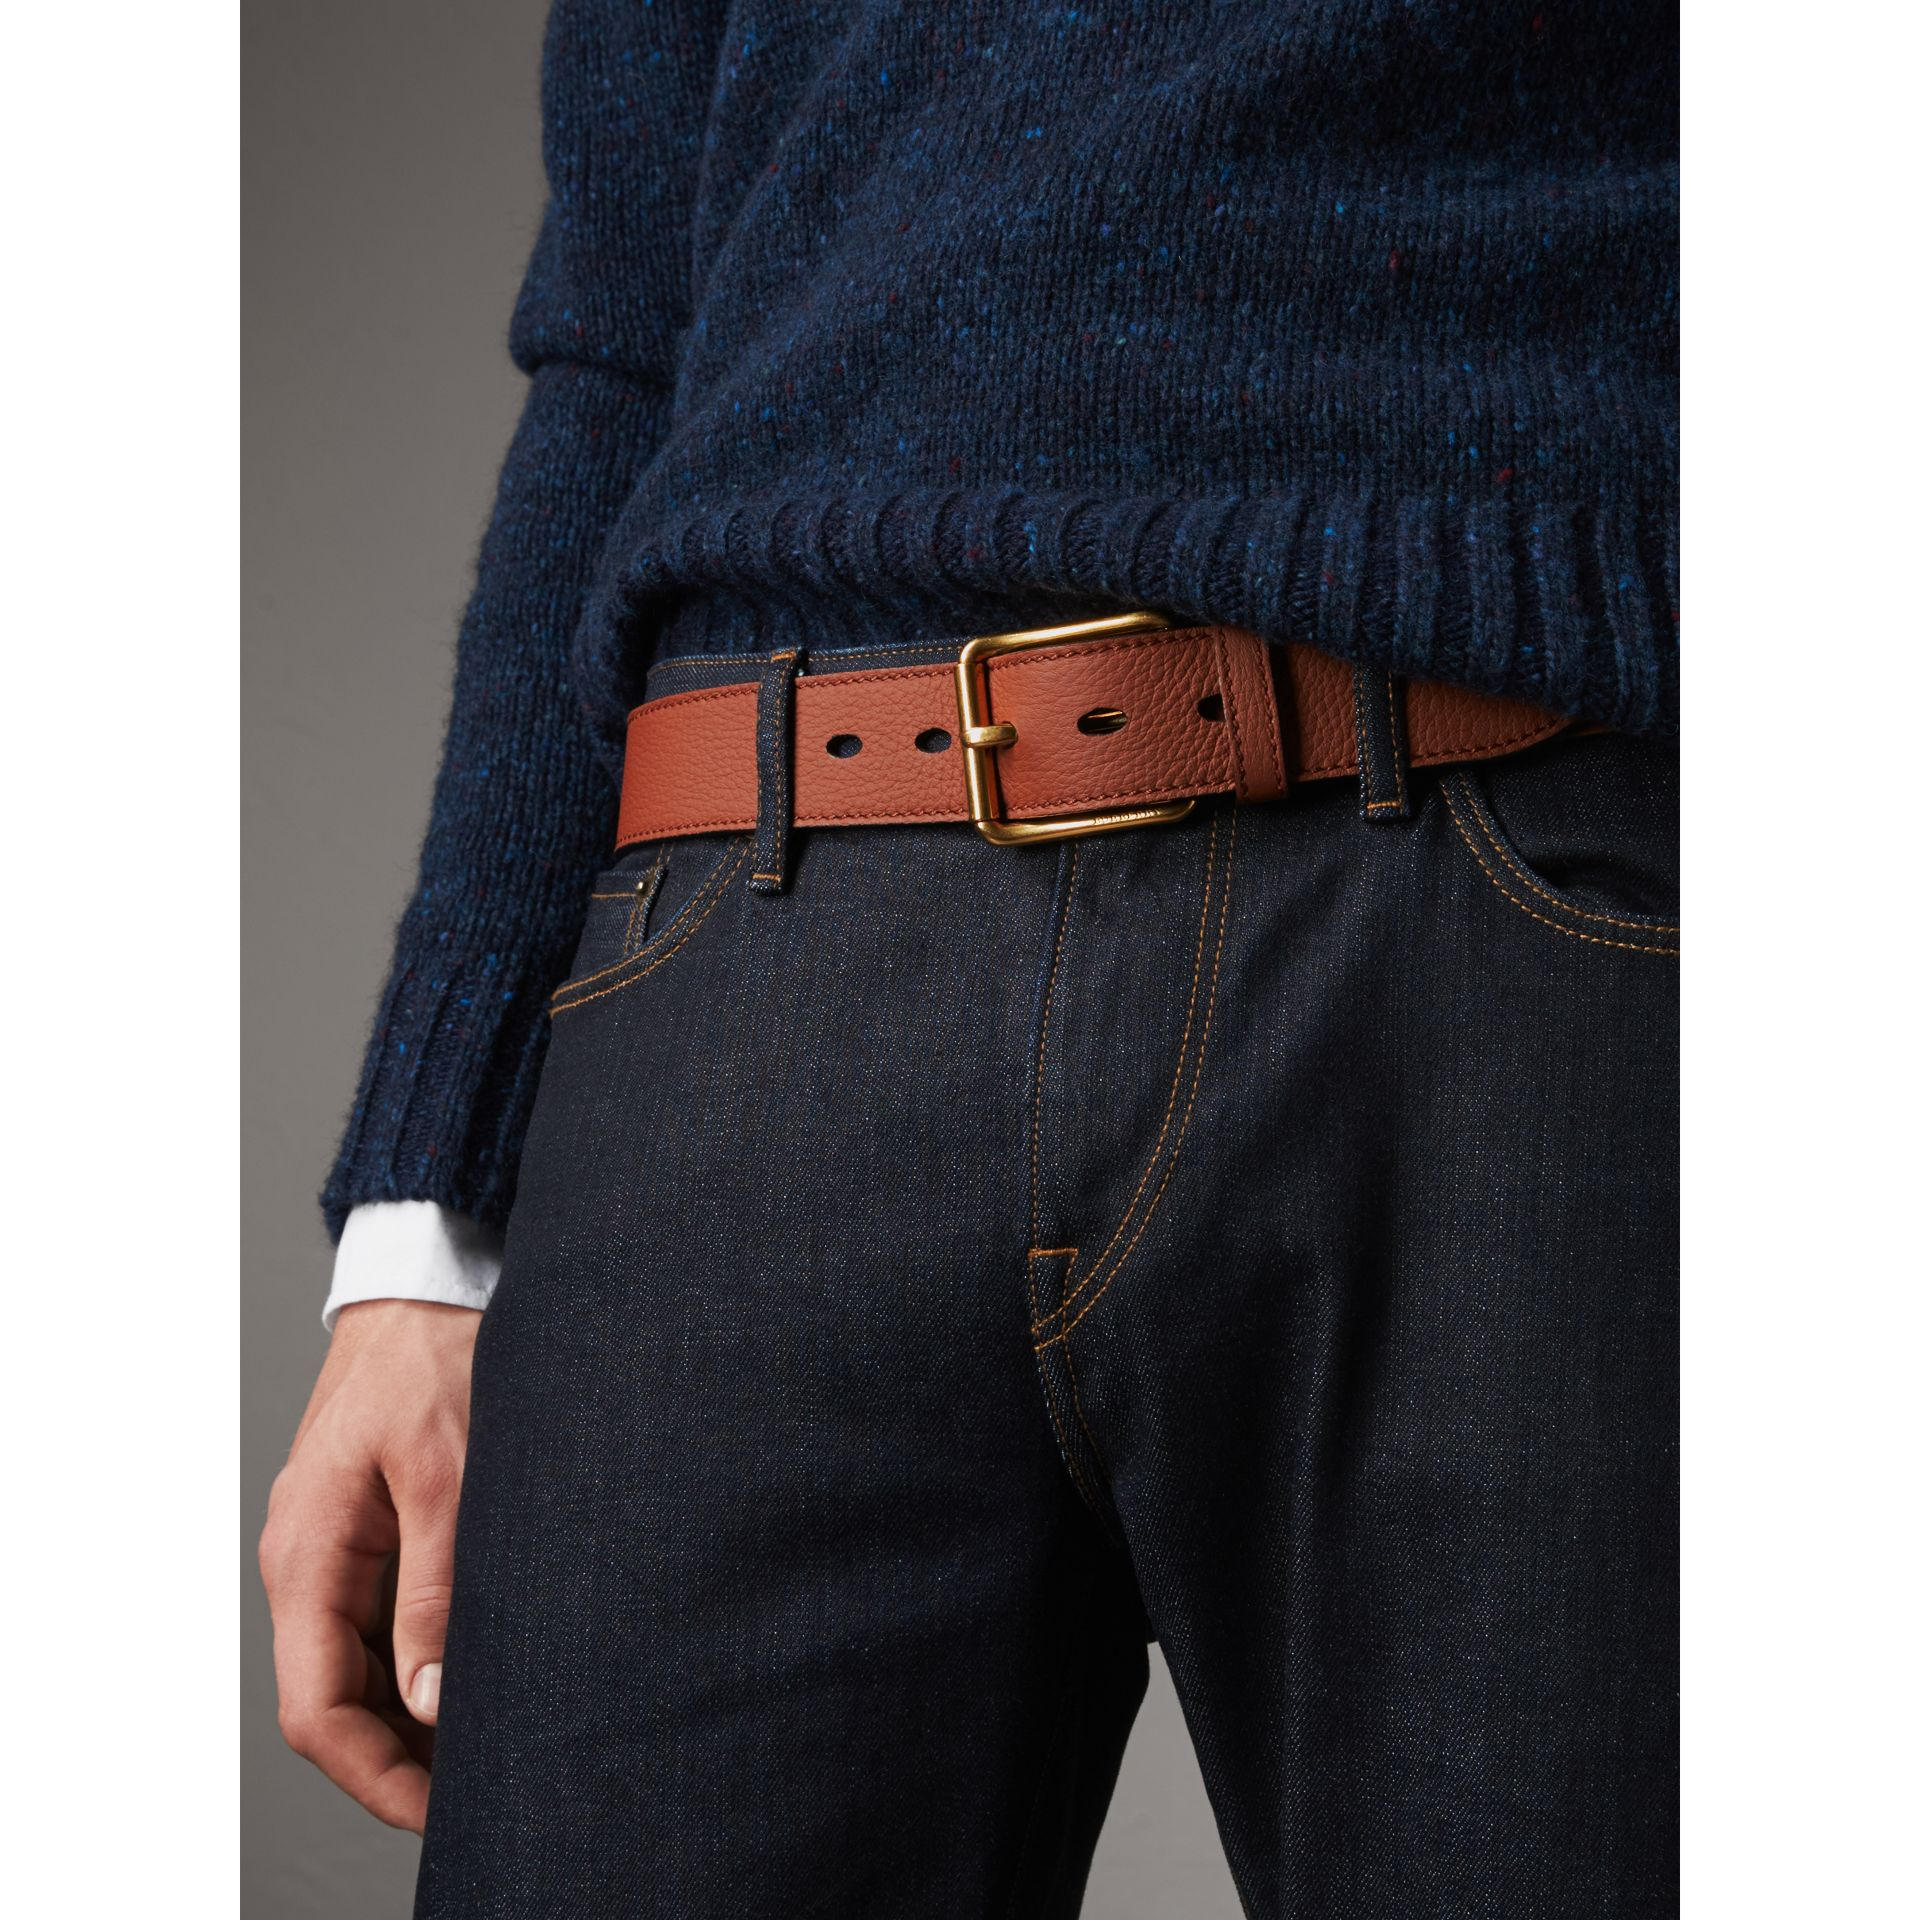 Grainy Leather Belt in Chestnut Brown - Men | Burberry United Kingdom - gallery image 2